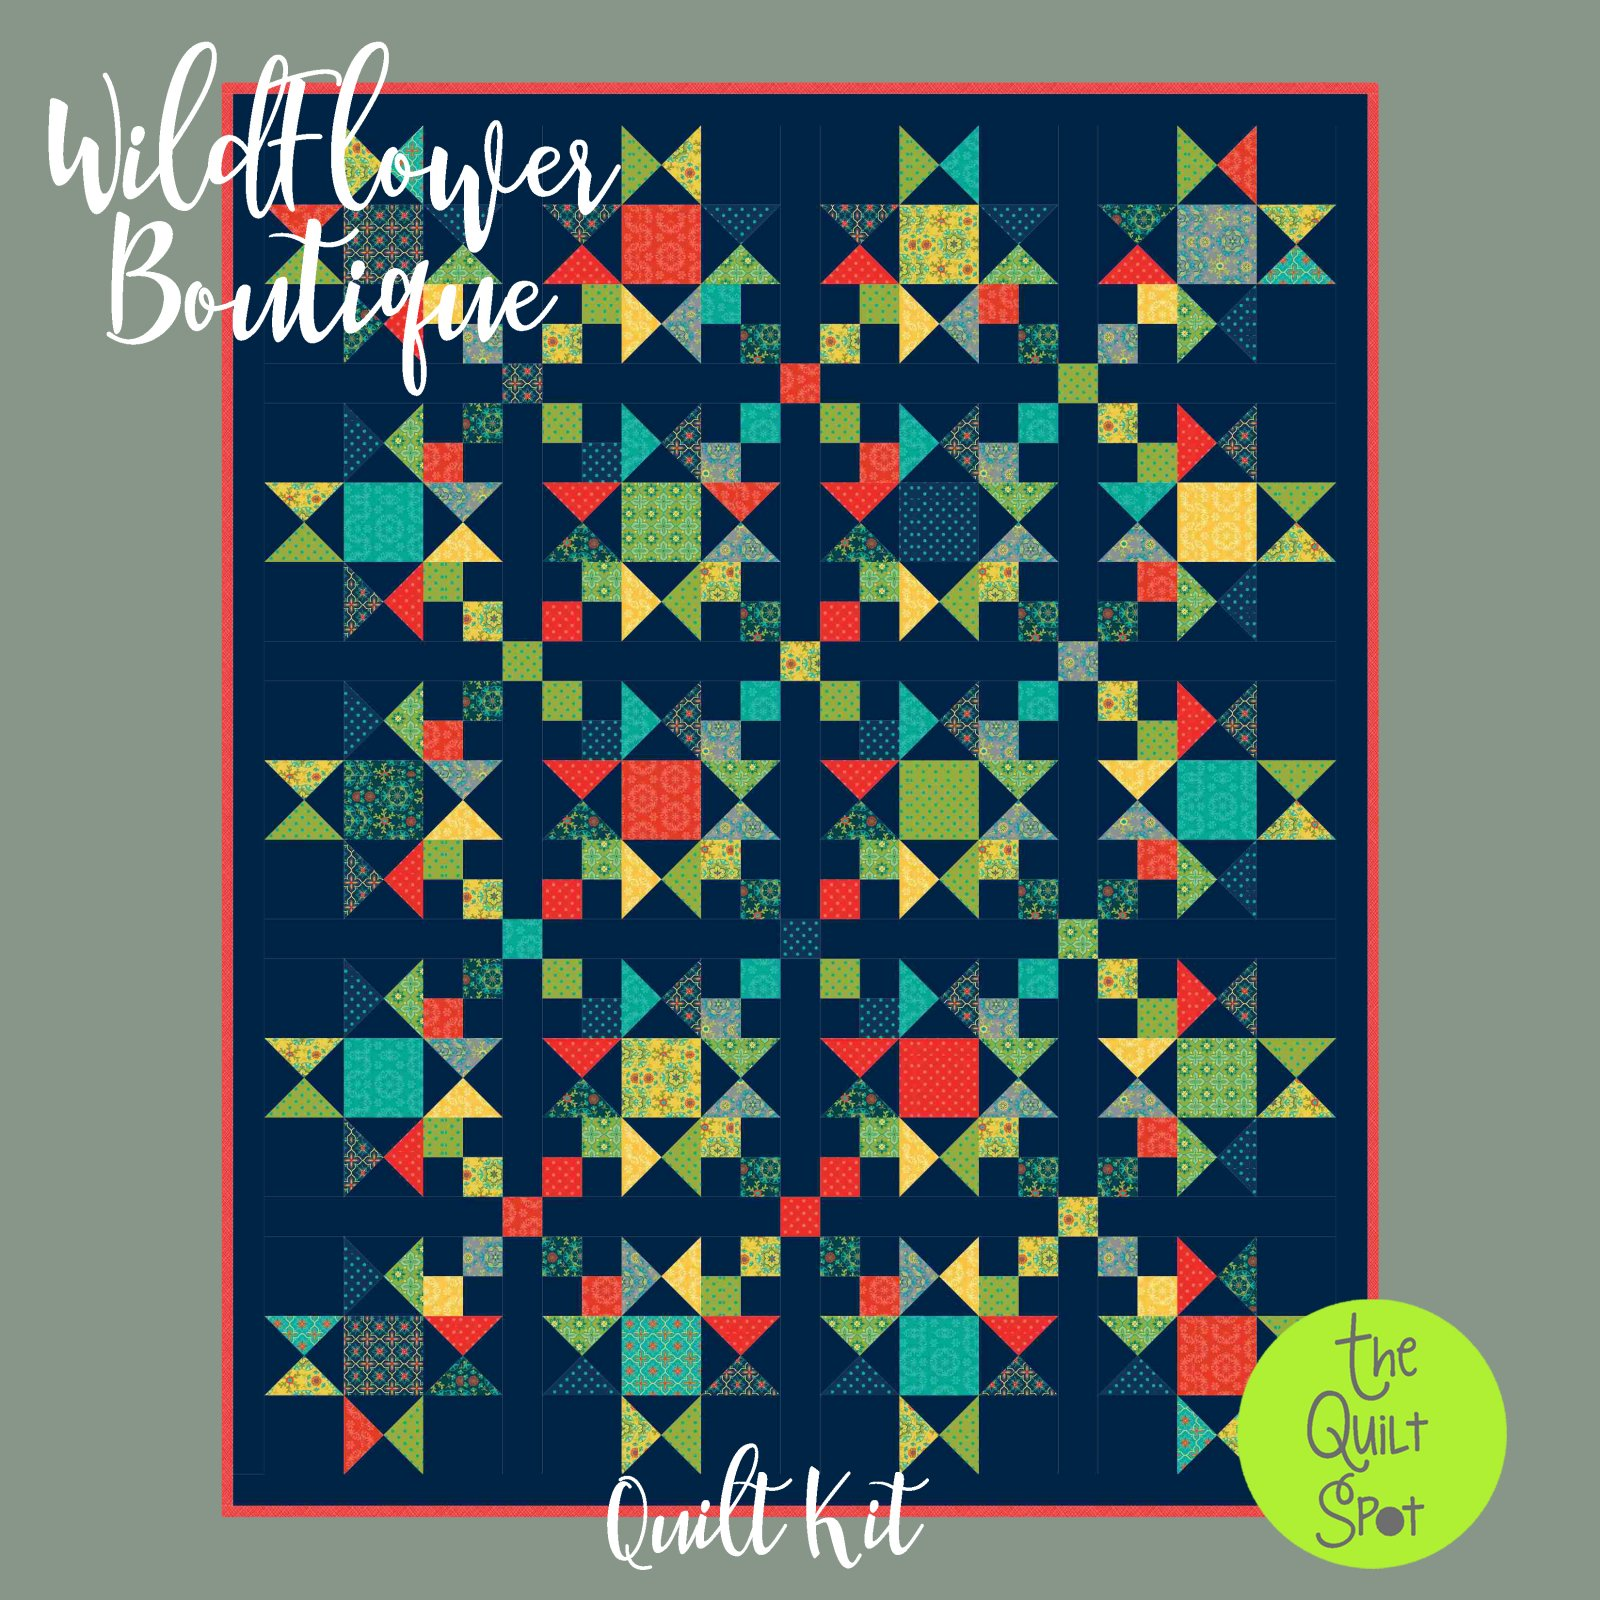 Wildflower Boutique Quilt Top Kit